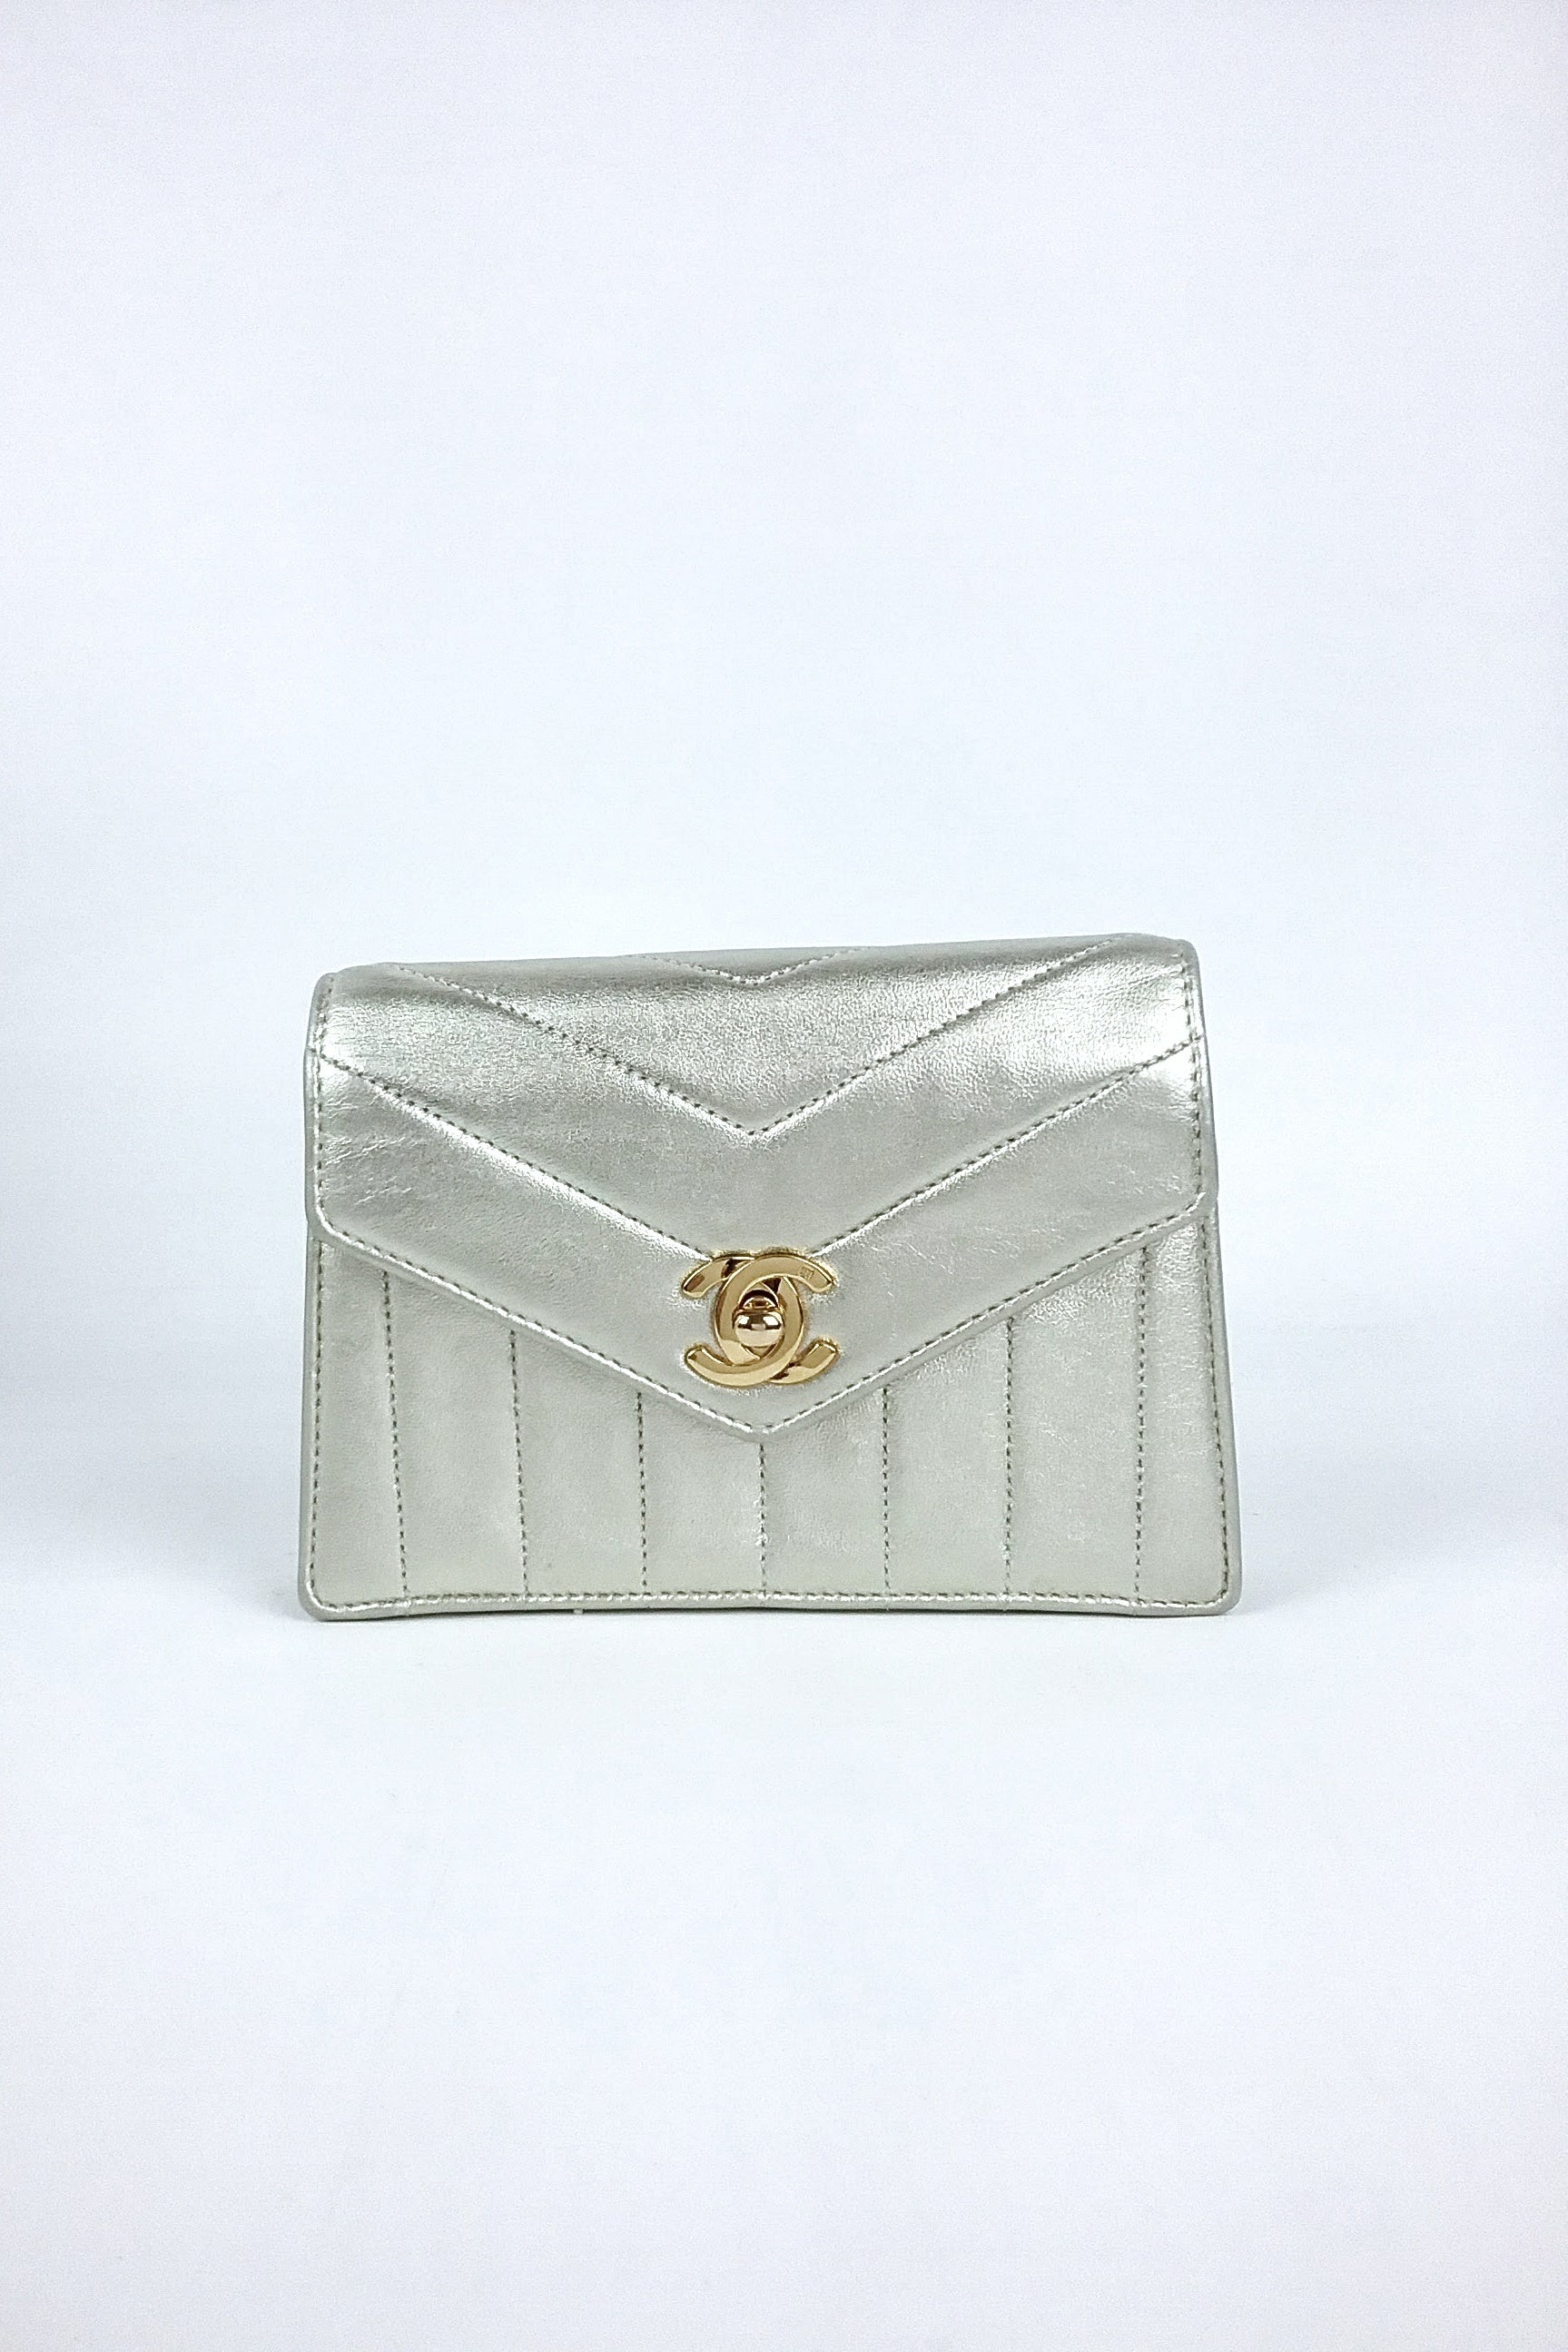 Metallic Light Gold Lambskin Mini Flap Bag